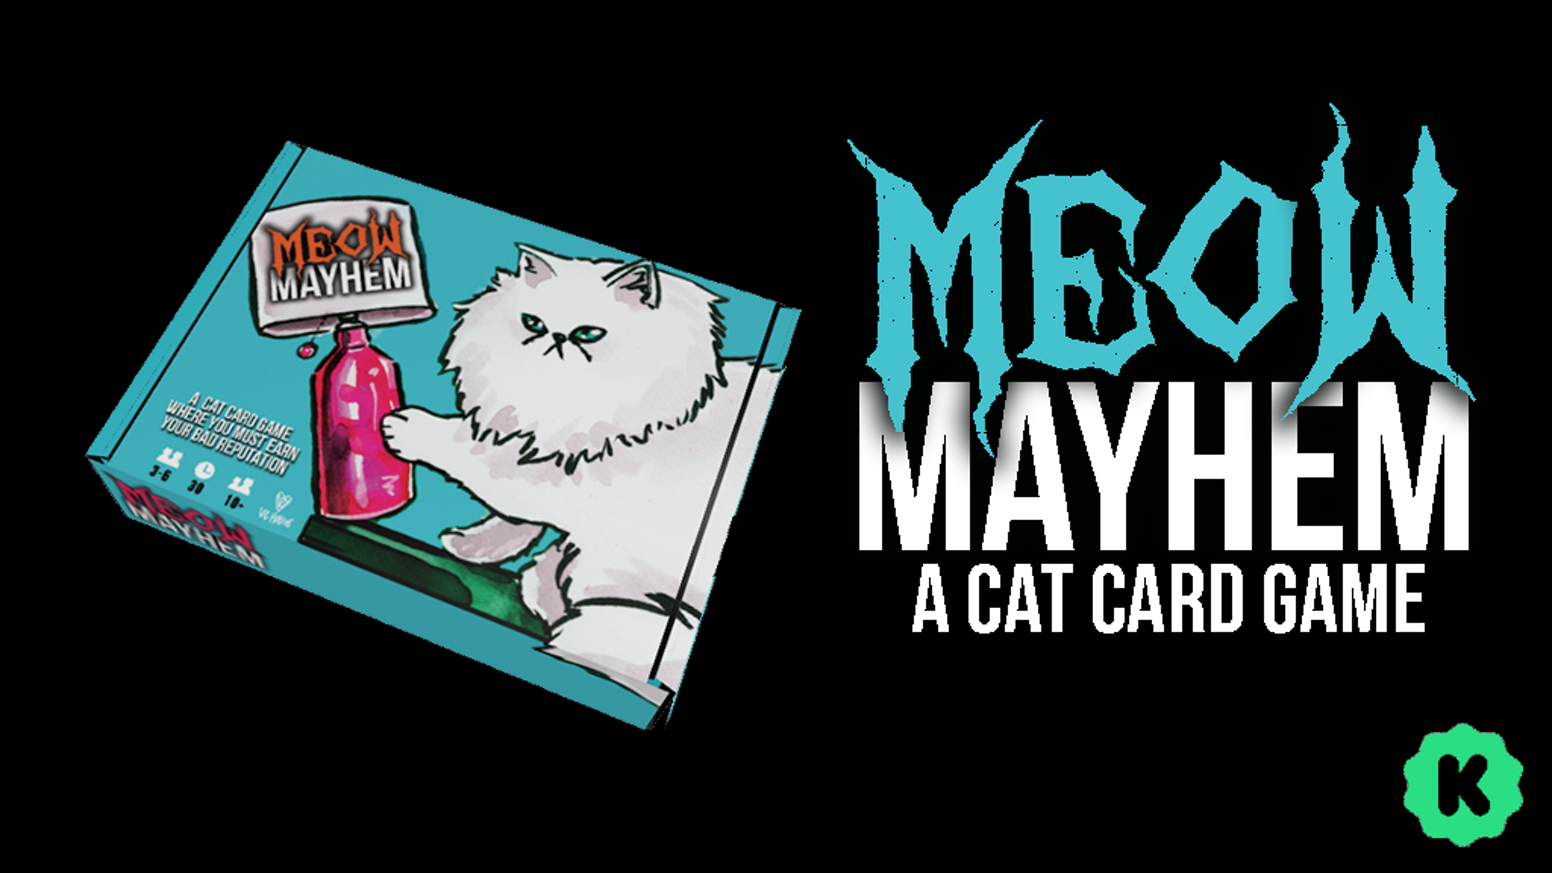 A Cat Card game comprised of Chaos and earning a Bad Reputation!